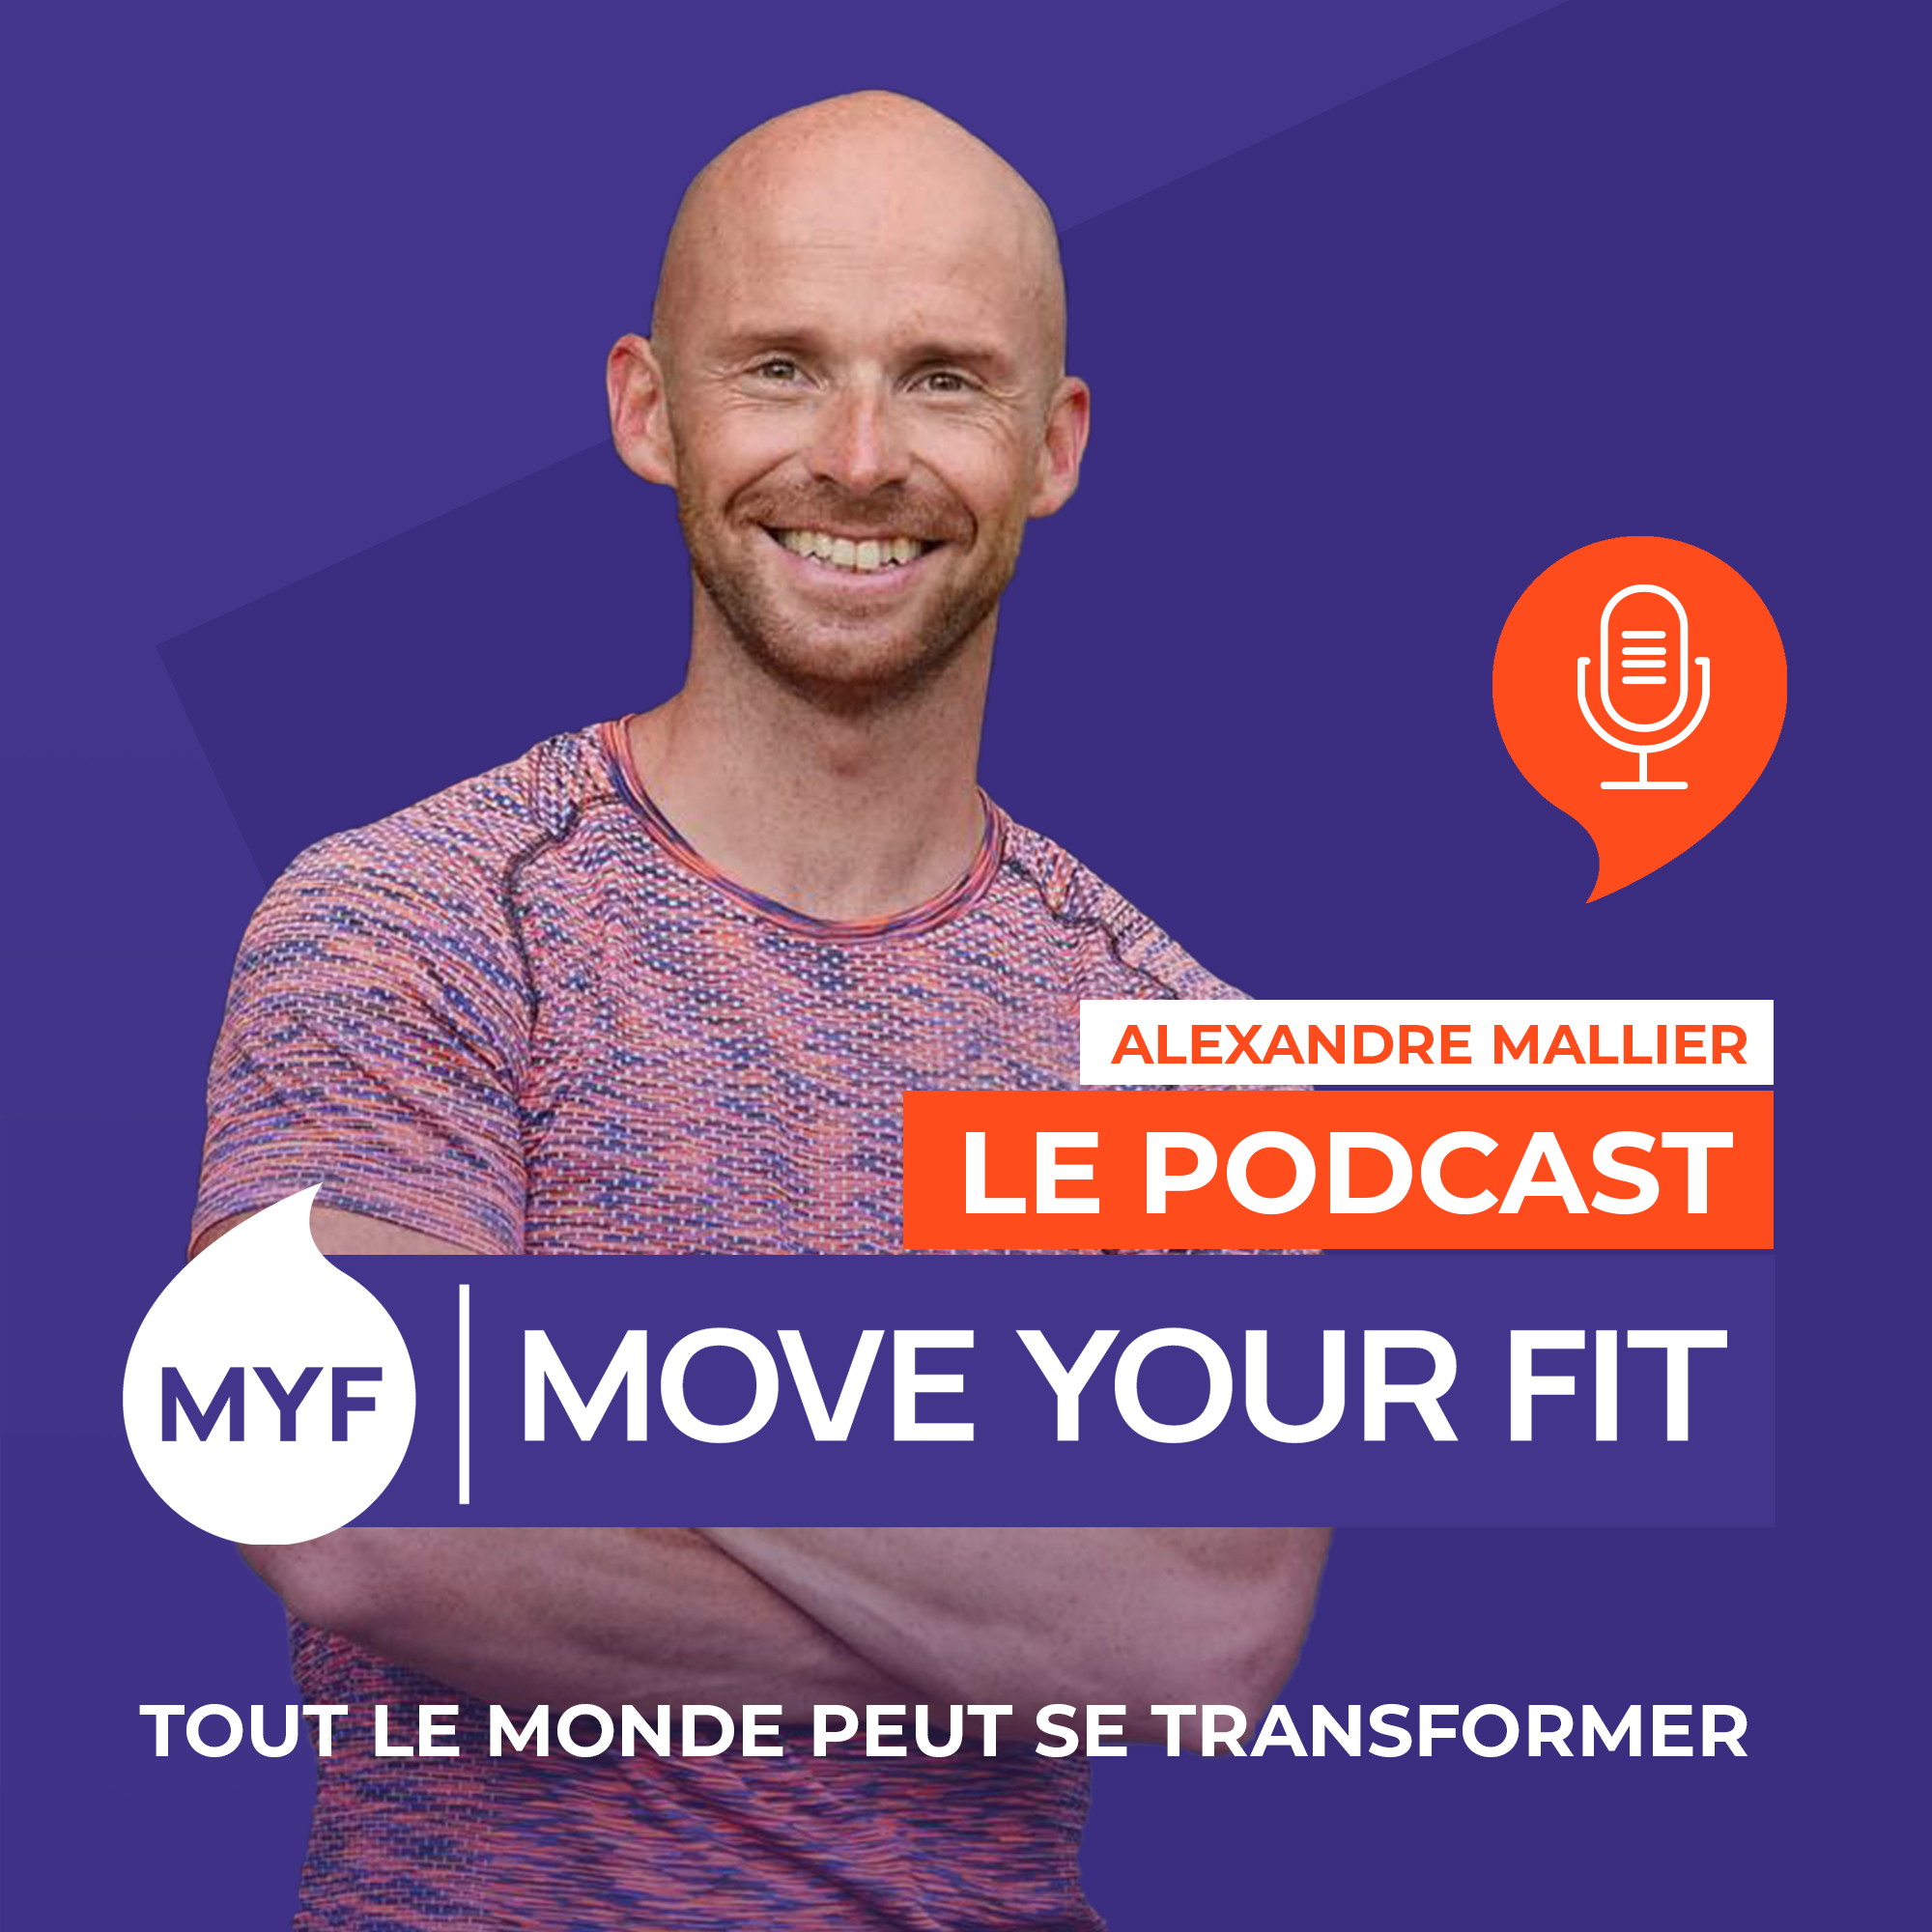 Move Your Fit - Le podcast